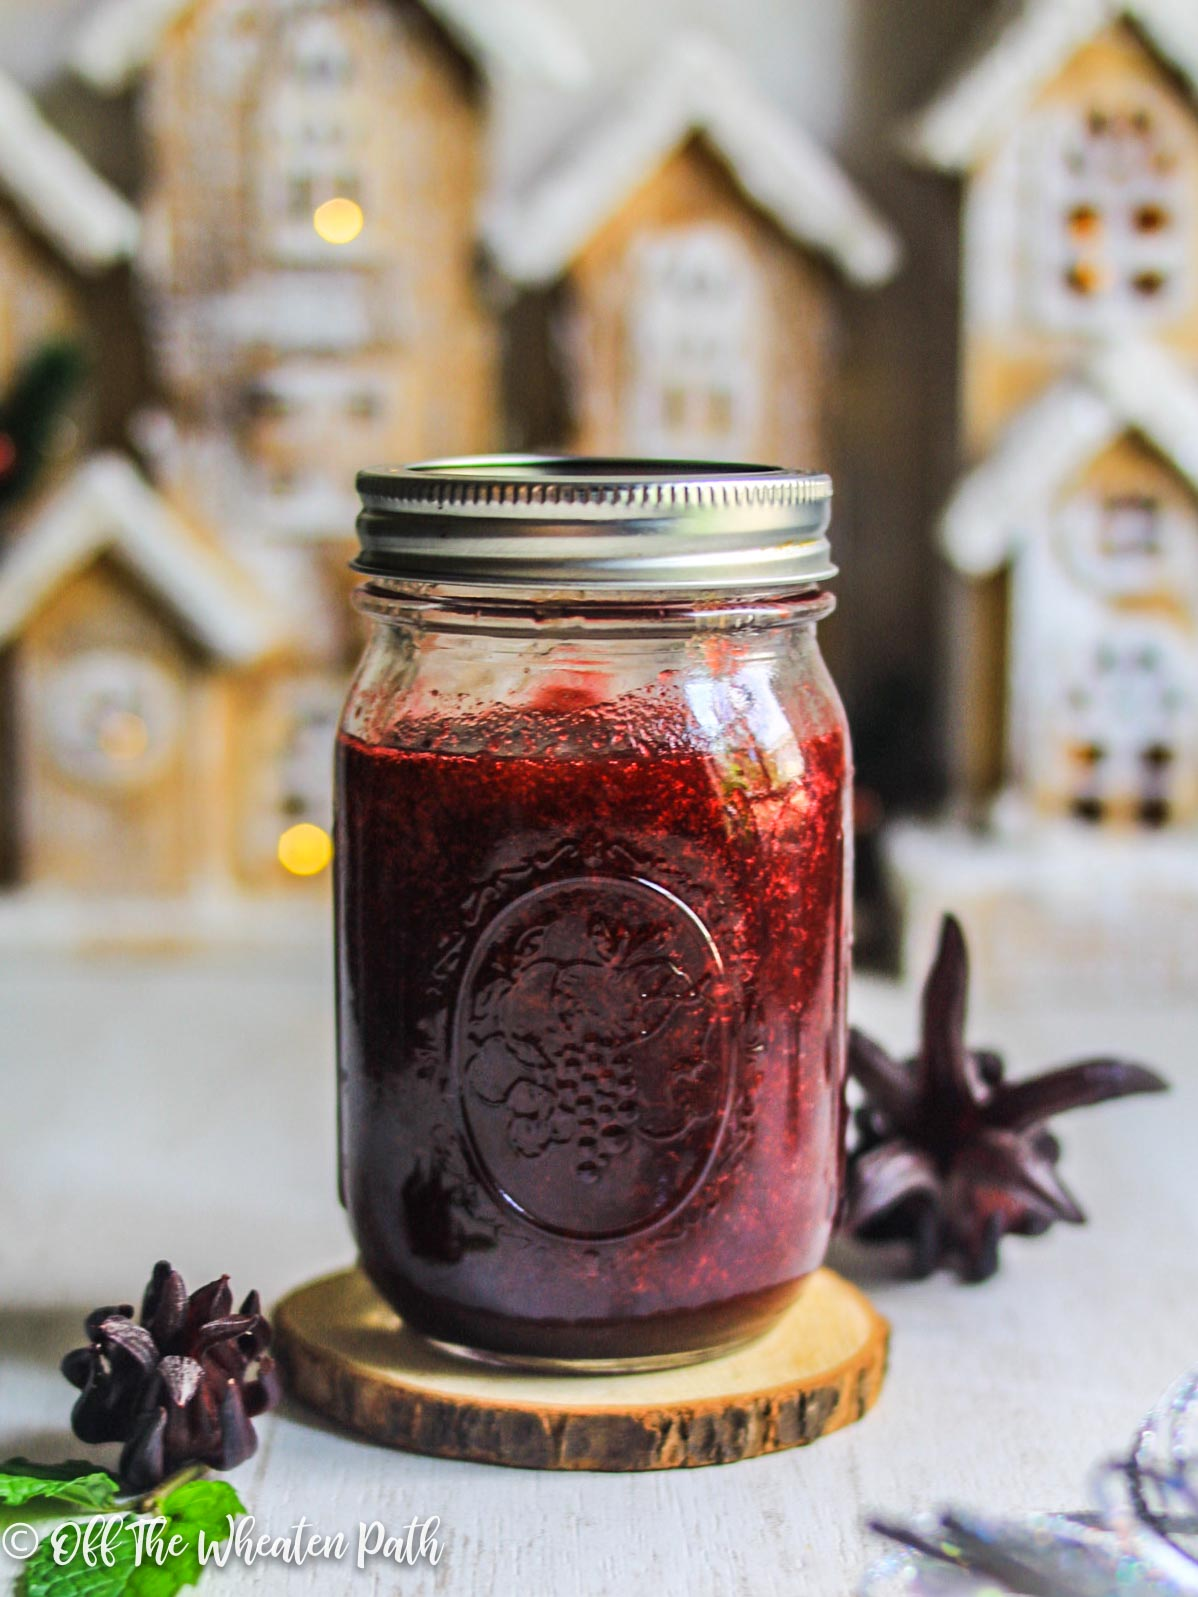 Sorrel or Roselle or Hibiscus Jam